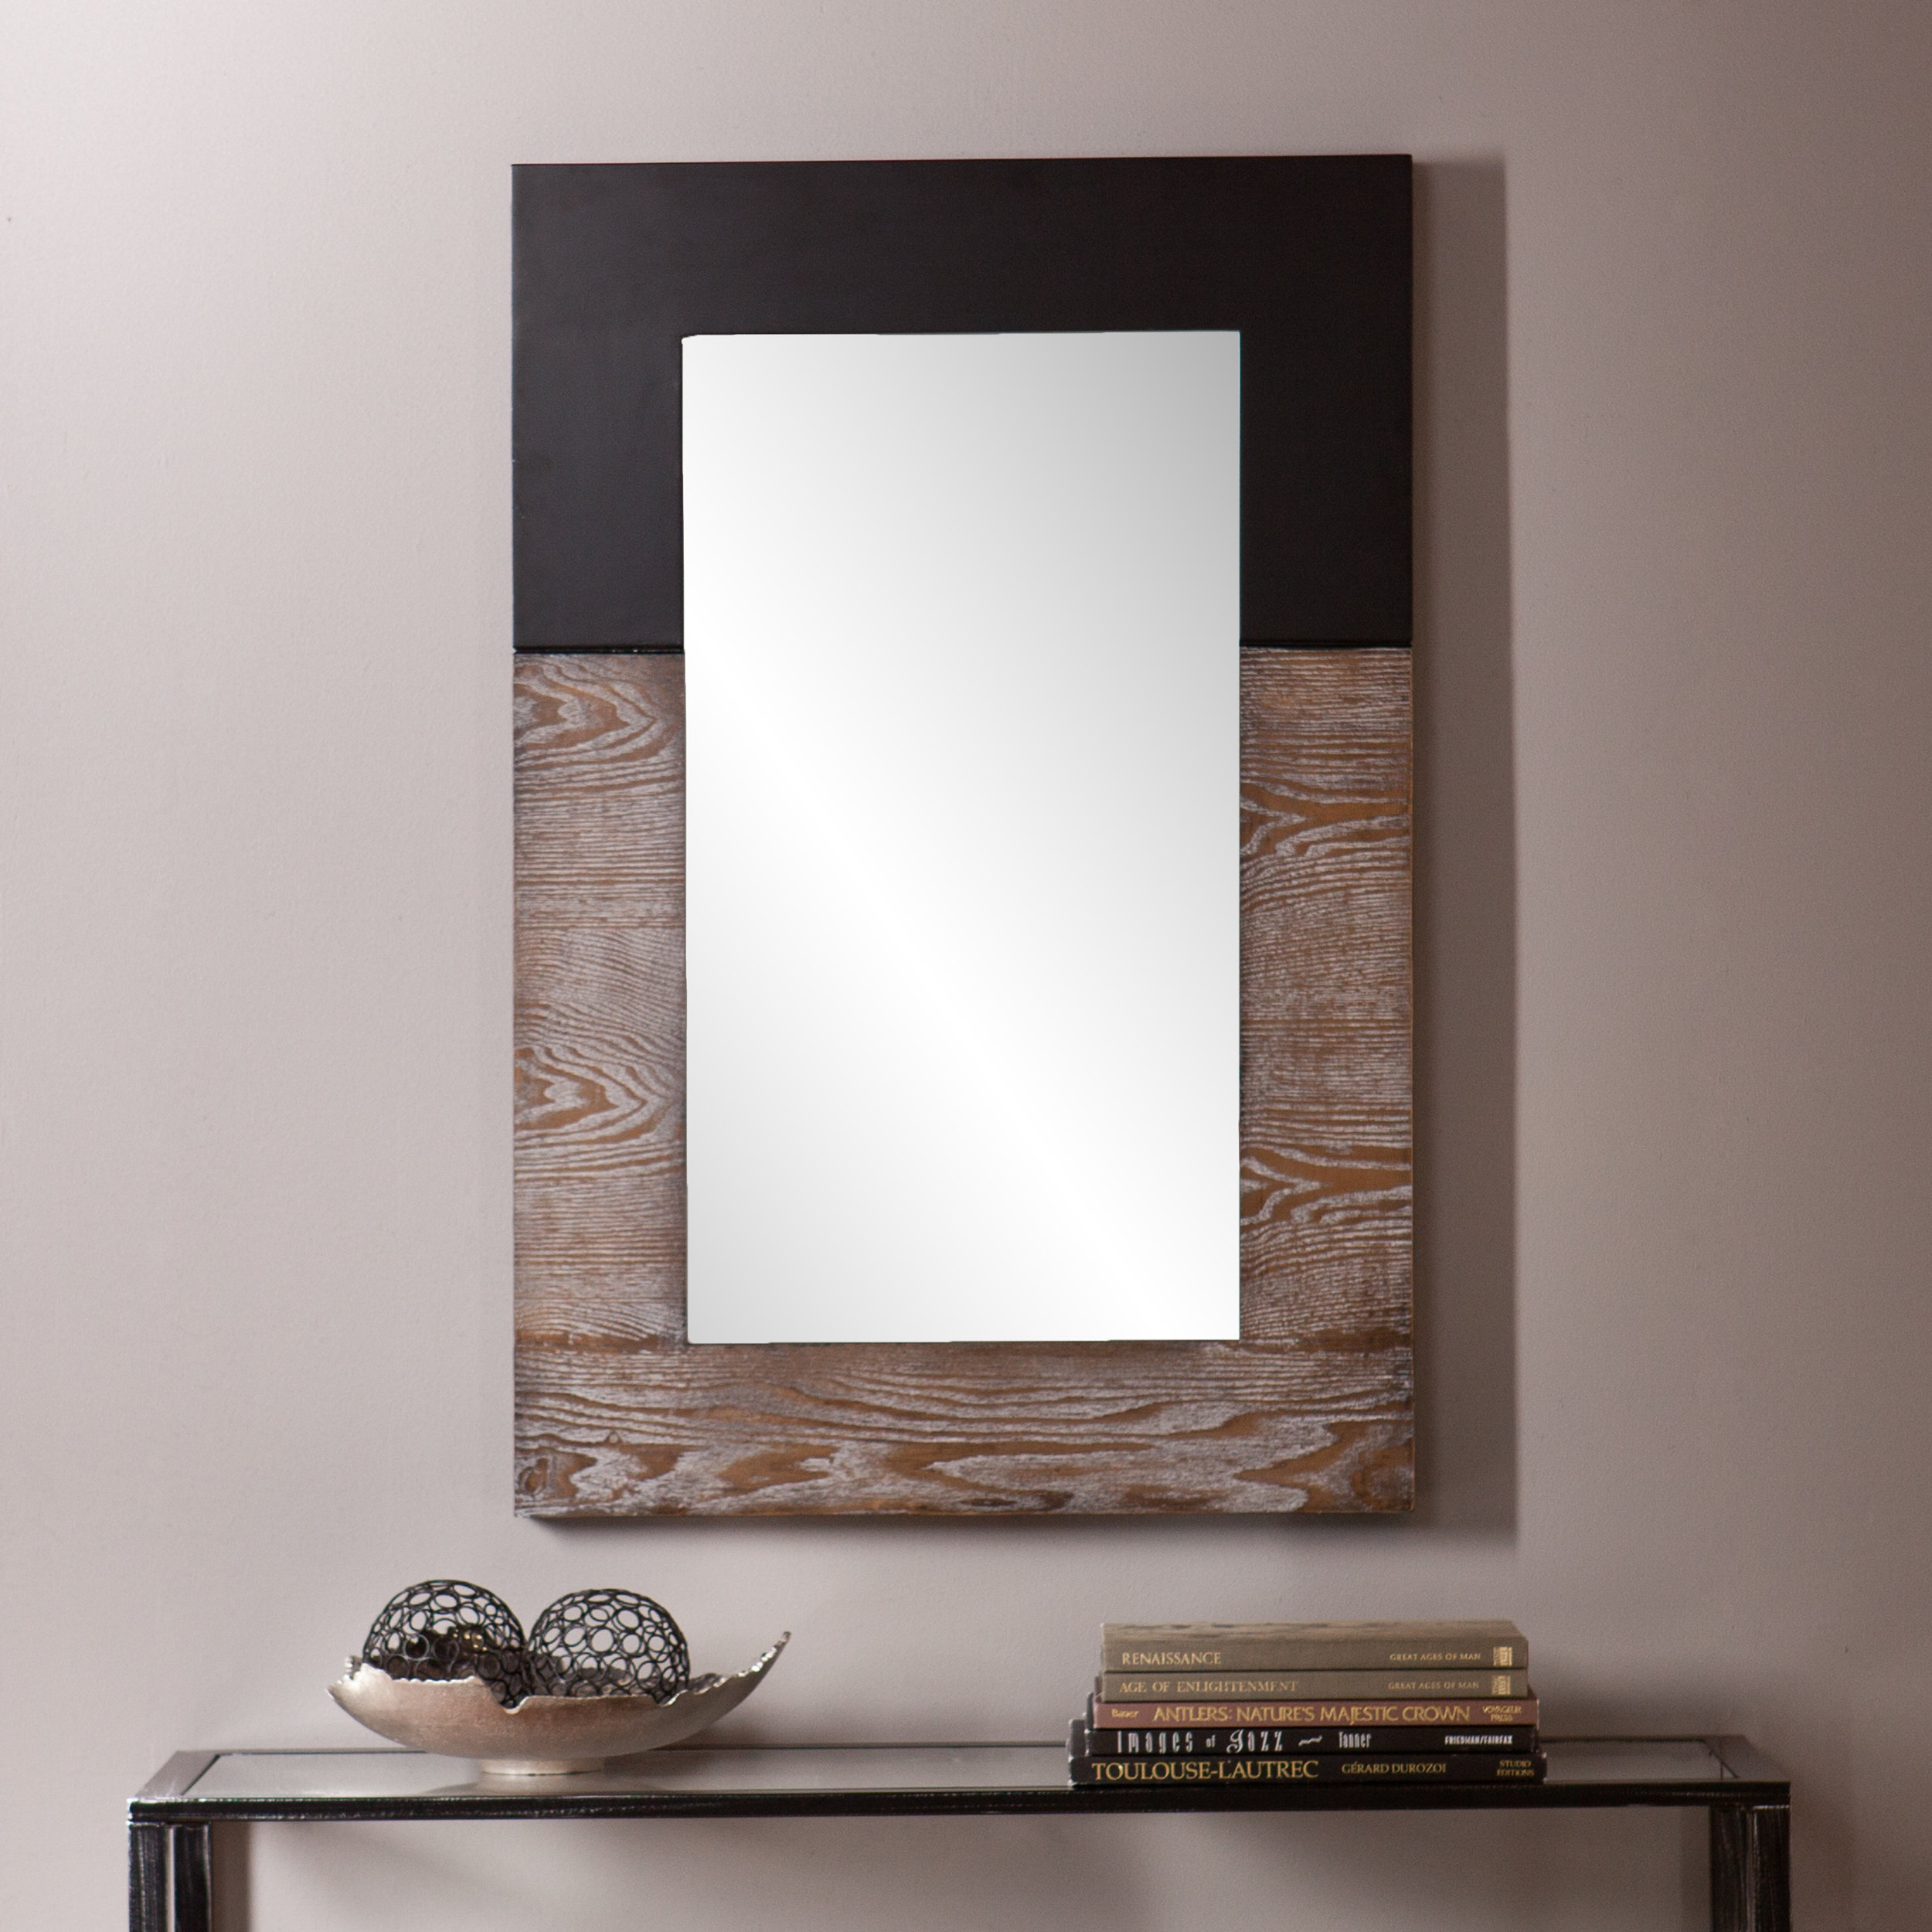 Farmhouse & Rustic Trent Austin Design Wall & Accent Mirrors Inside Berinhard Accent Mirrors (Image 9 of 20)